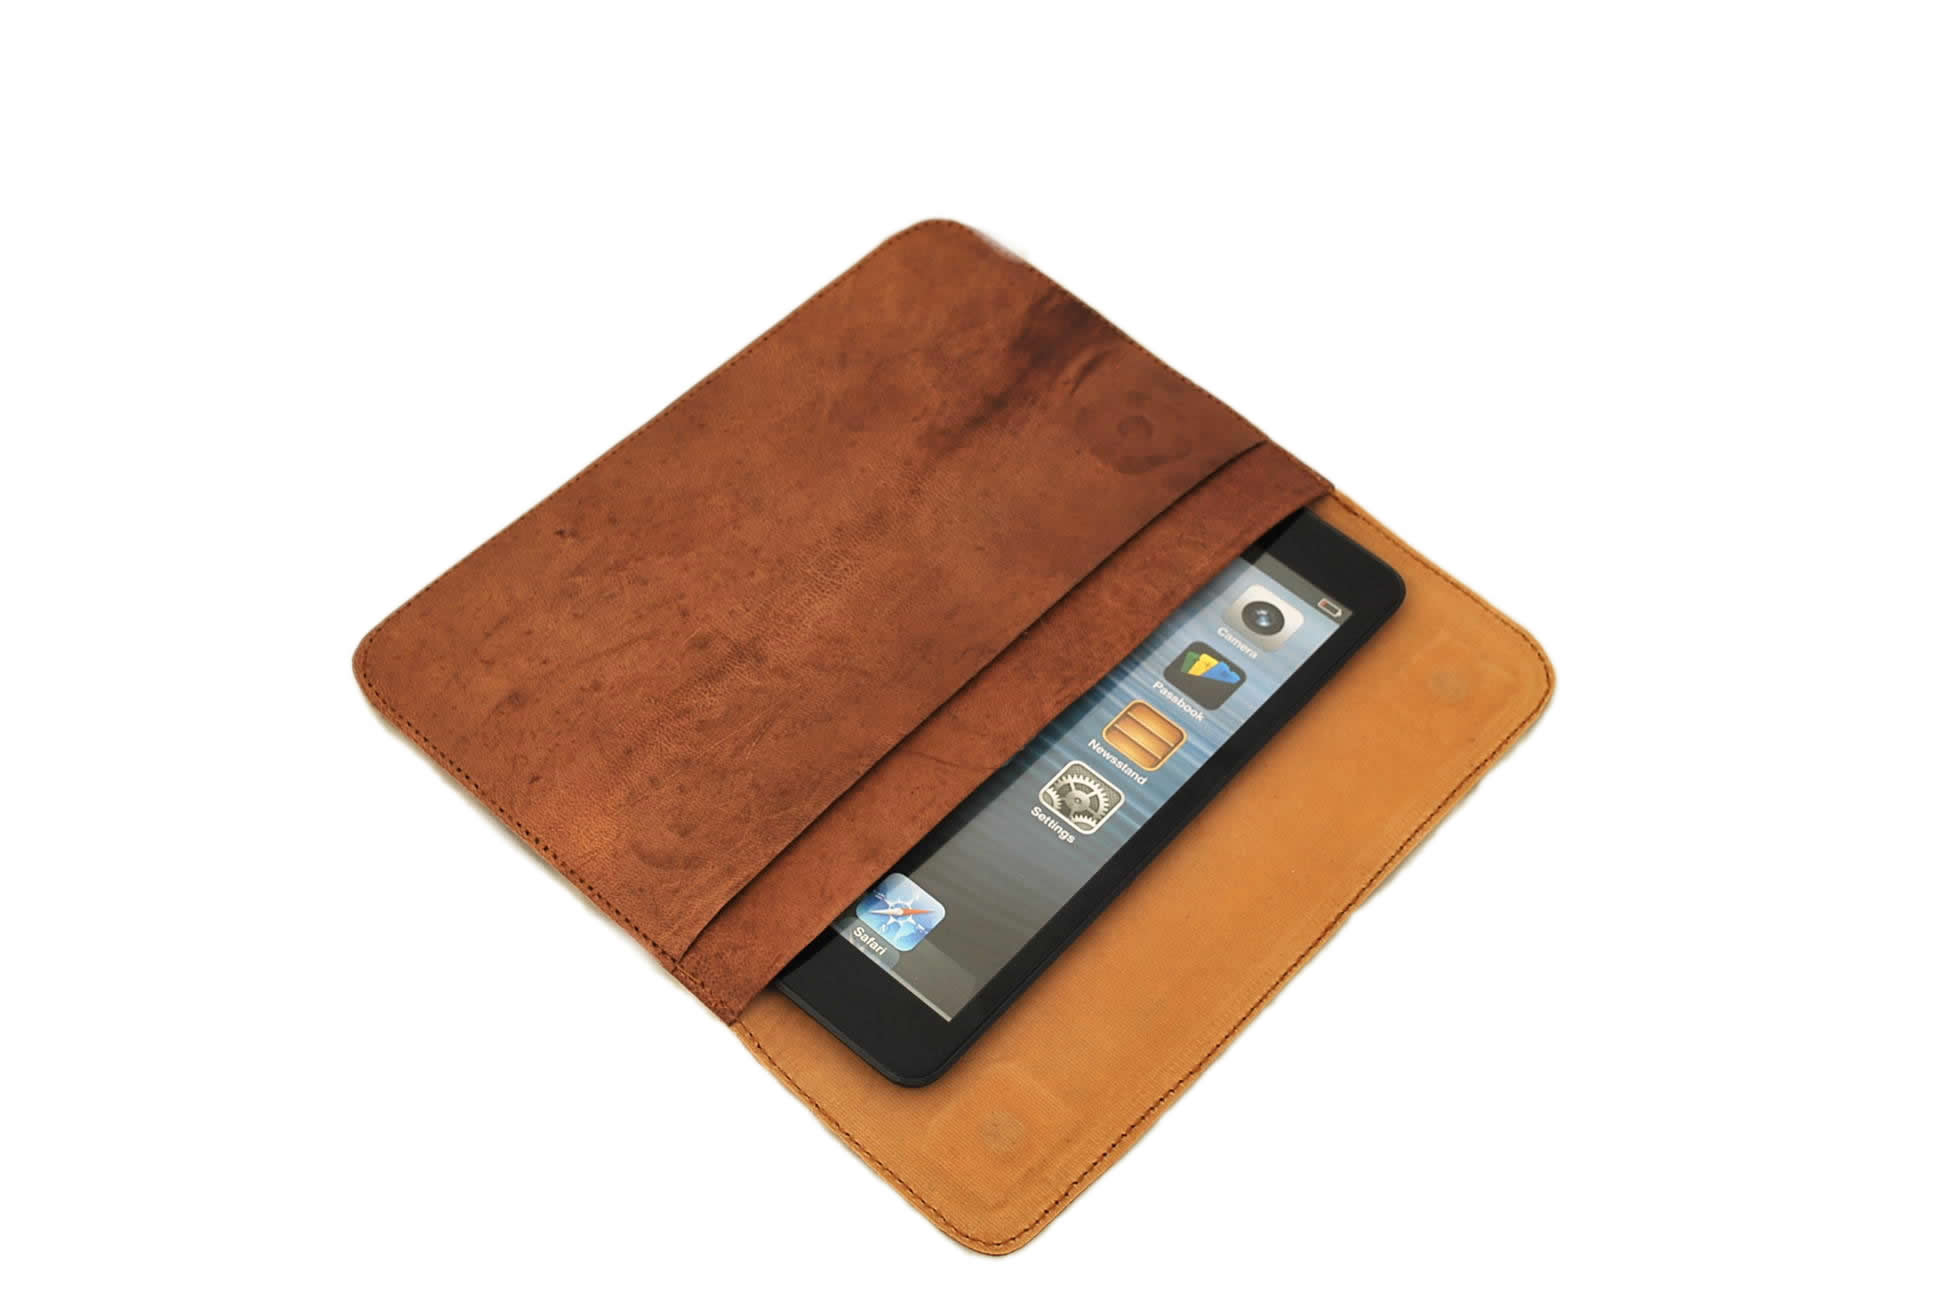 Pure leather high quality tablet cases and tablet covers